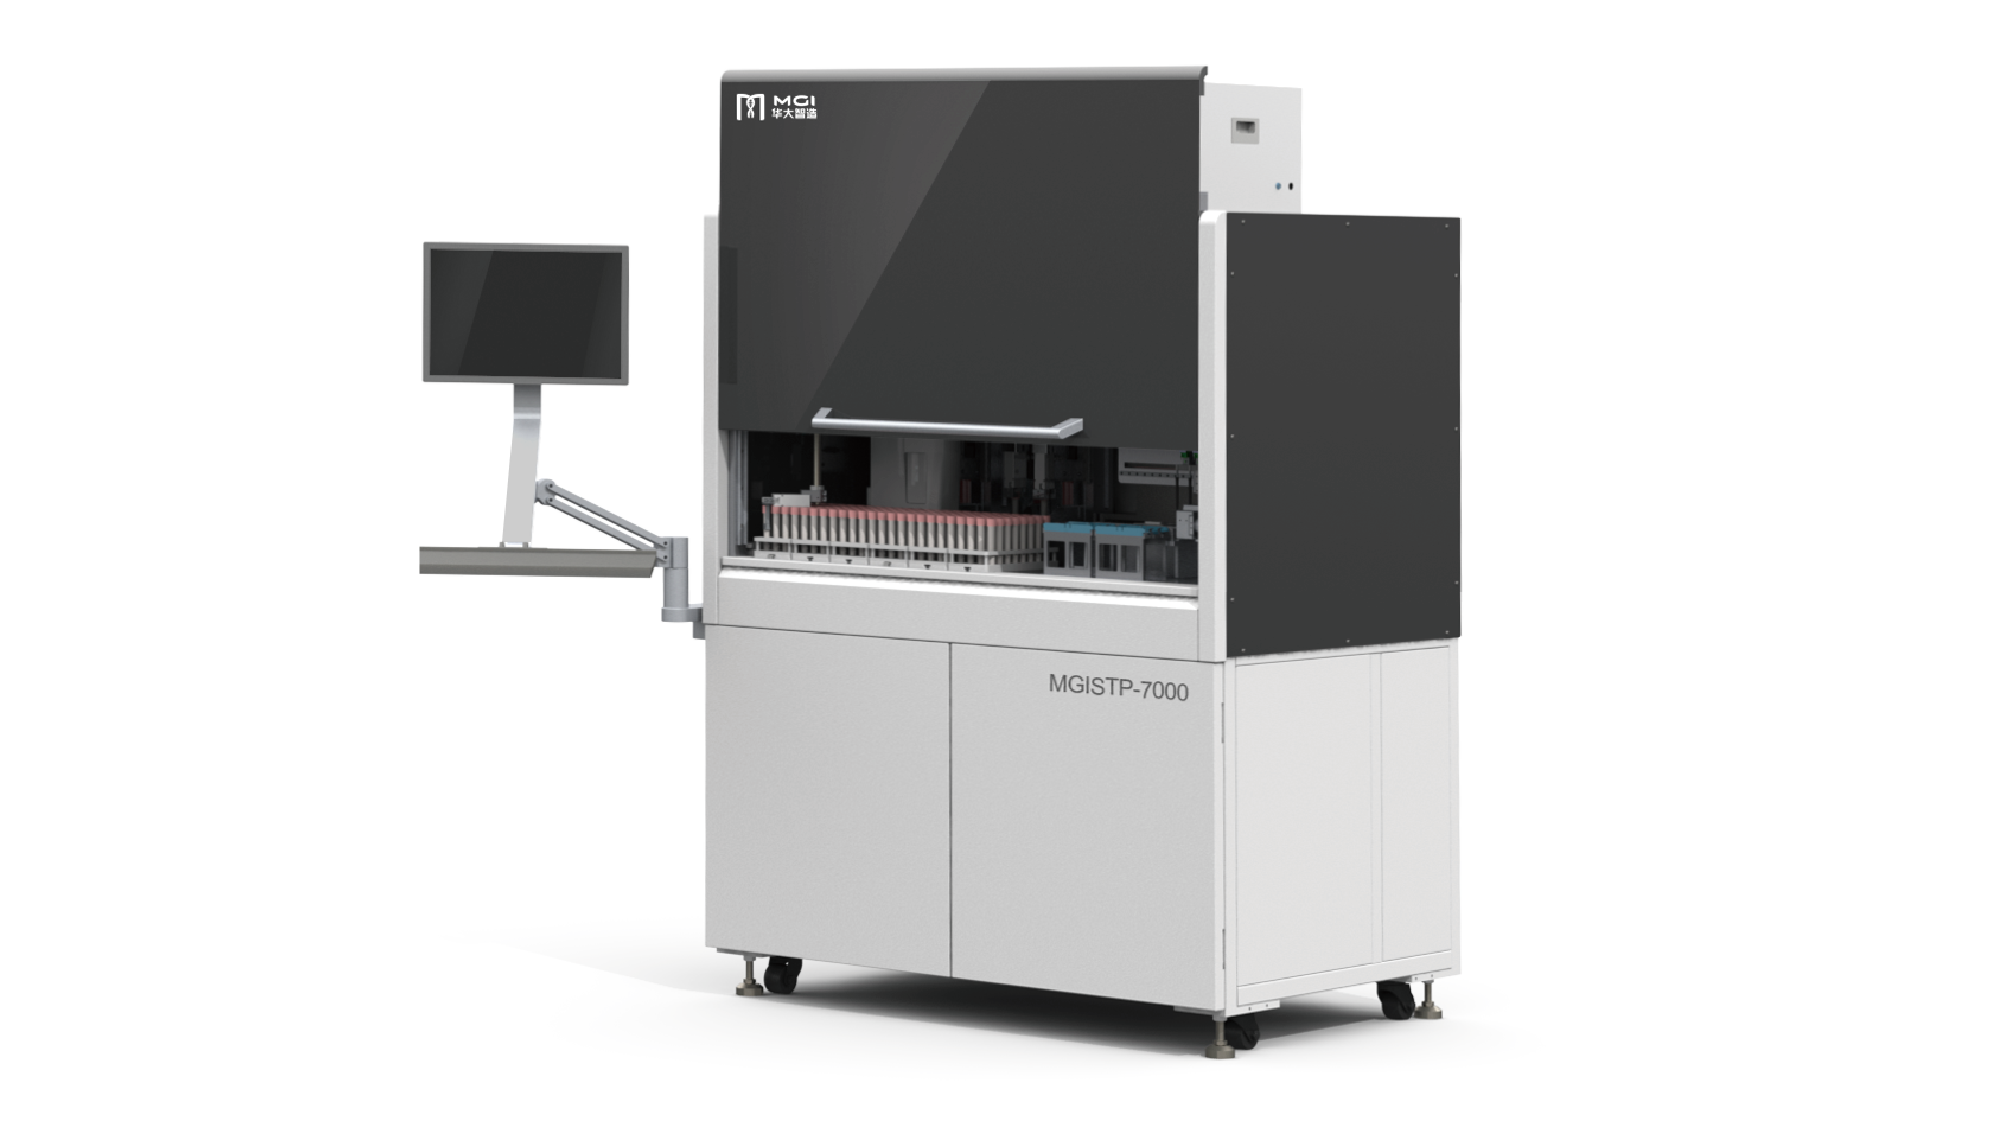 MGISTP-7000 High-throughput Automated Sample Transfer Processing System